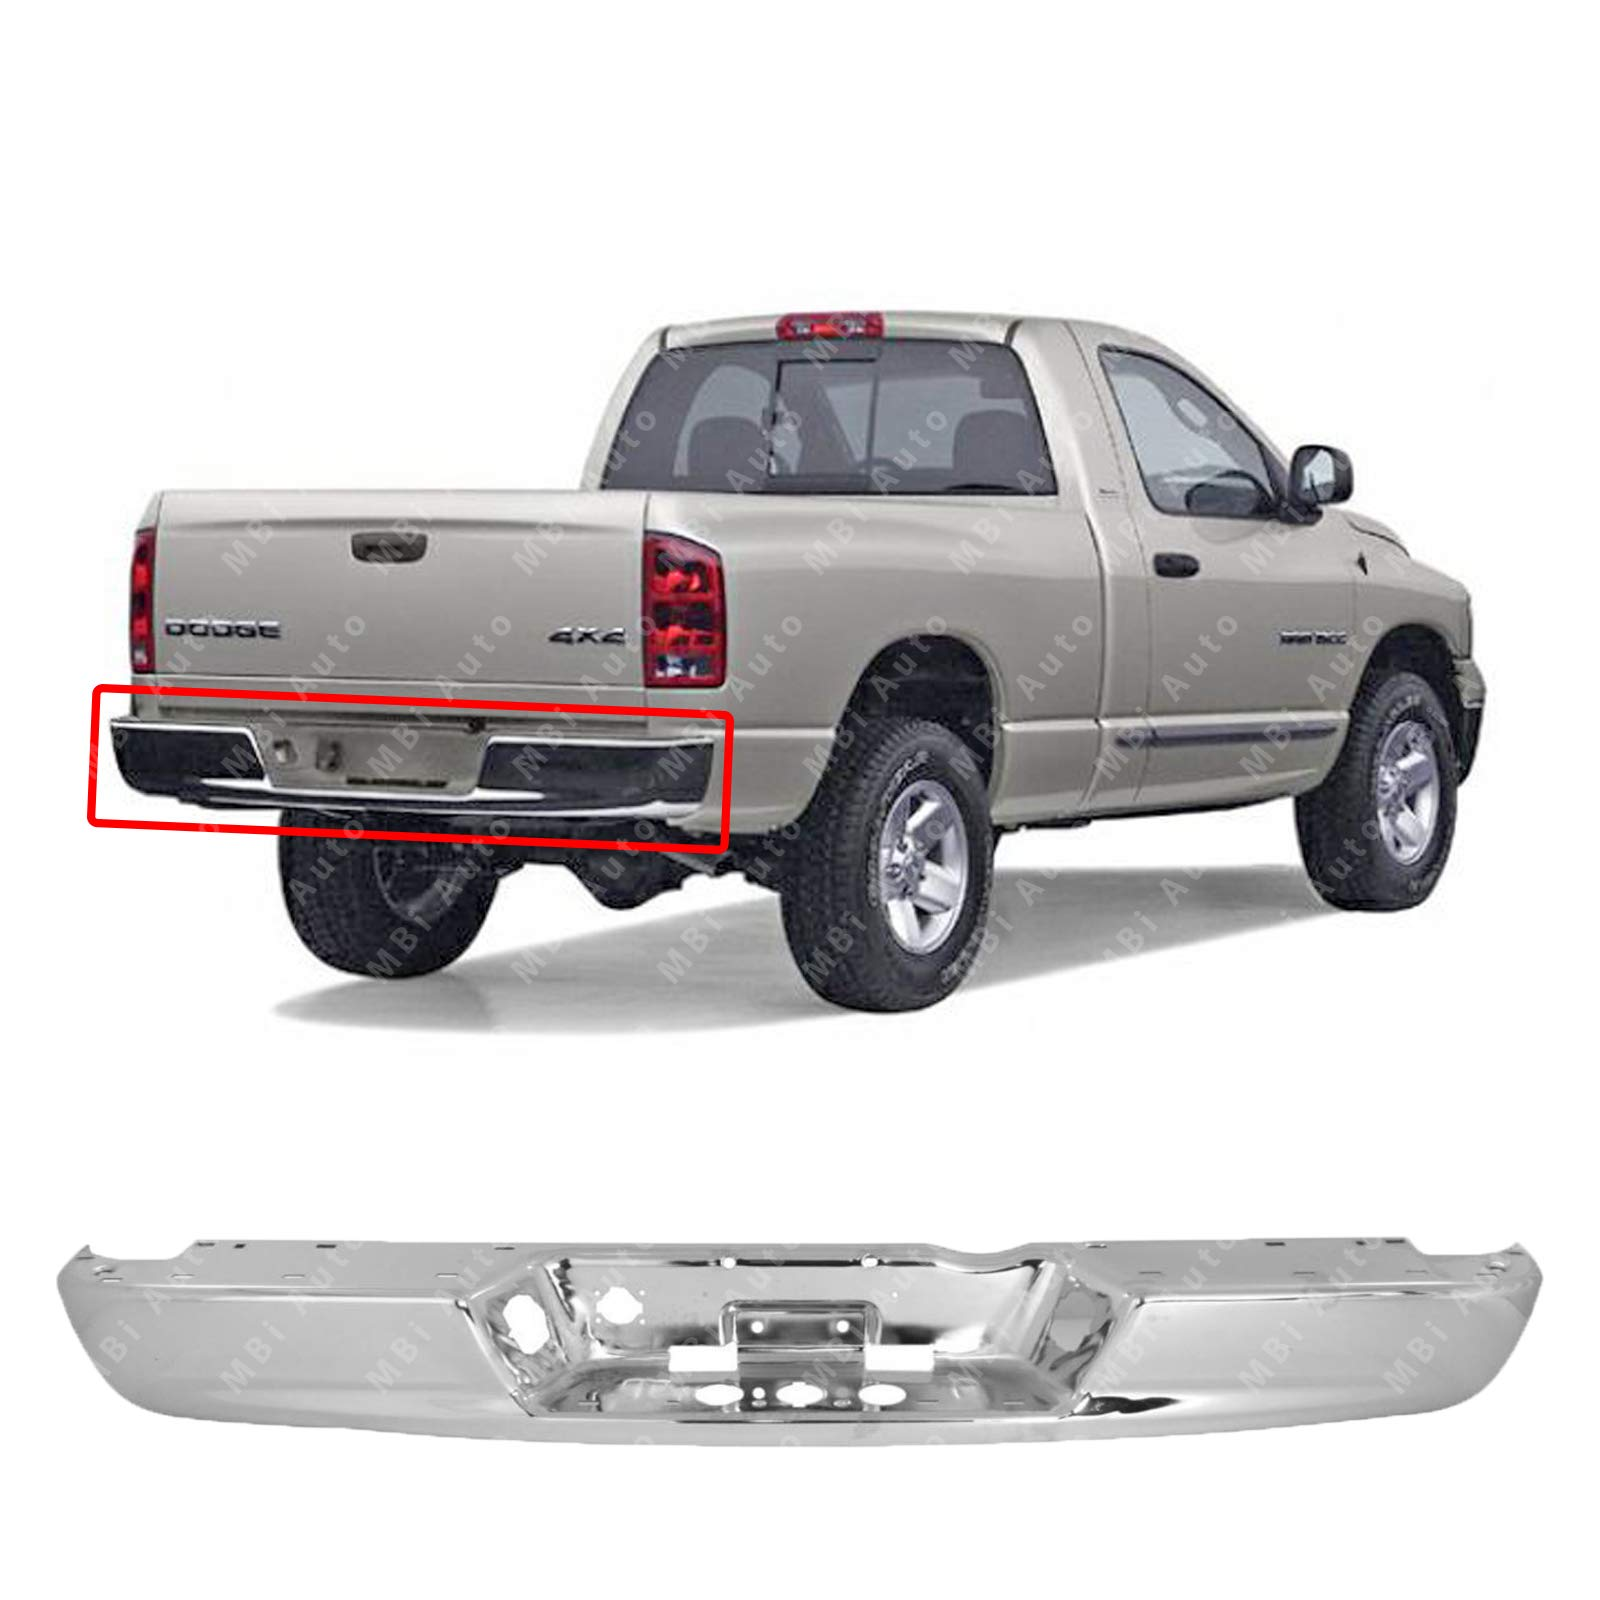 MBI AUTO - Steel Chrome, Rear Bumper Face Bar for 2002 2003 2004 2005 2006 2007 2008 2009 Dodge RAM 1500 2500 3500 HD, CH1102371